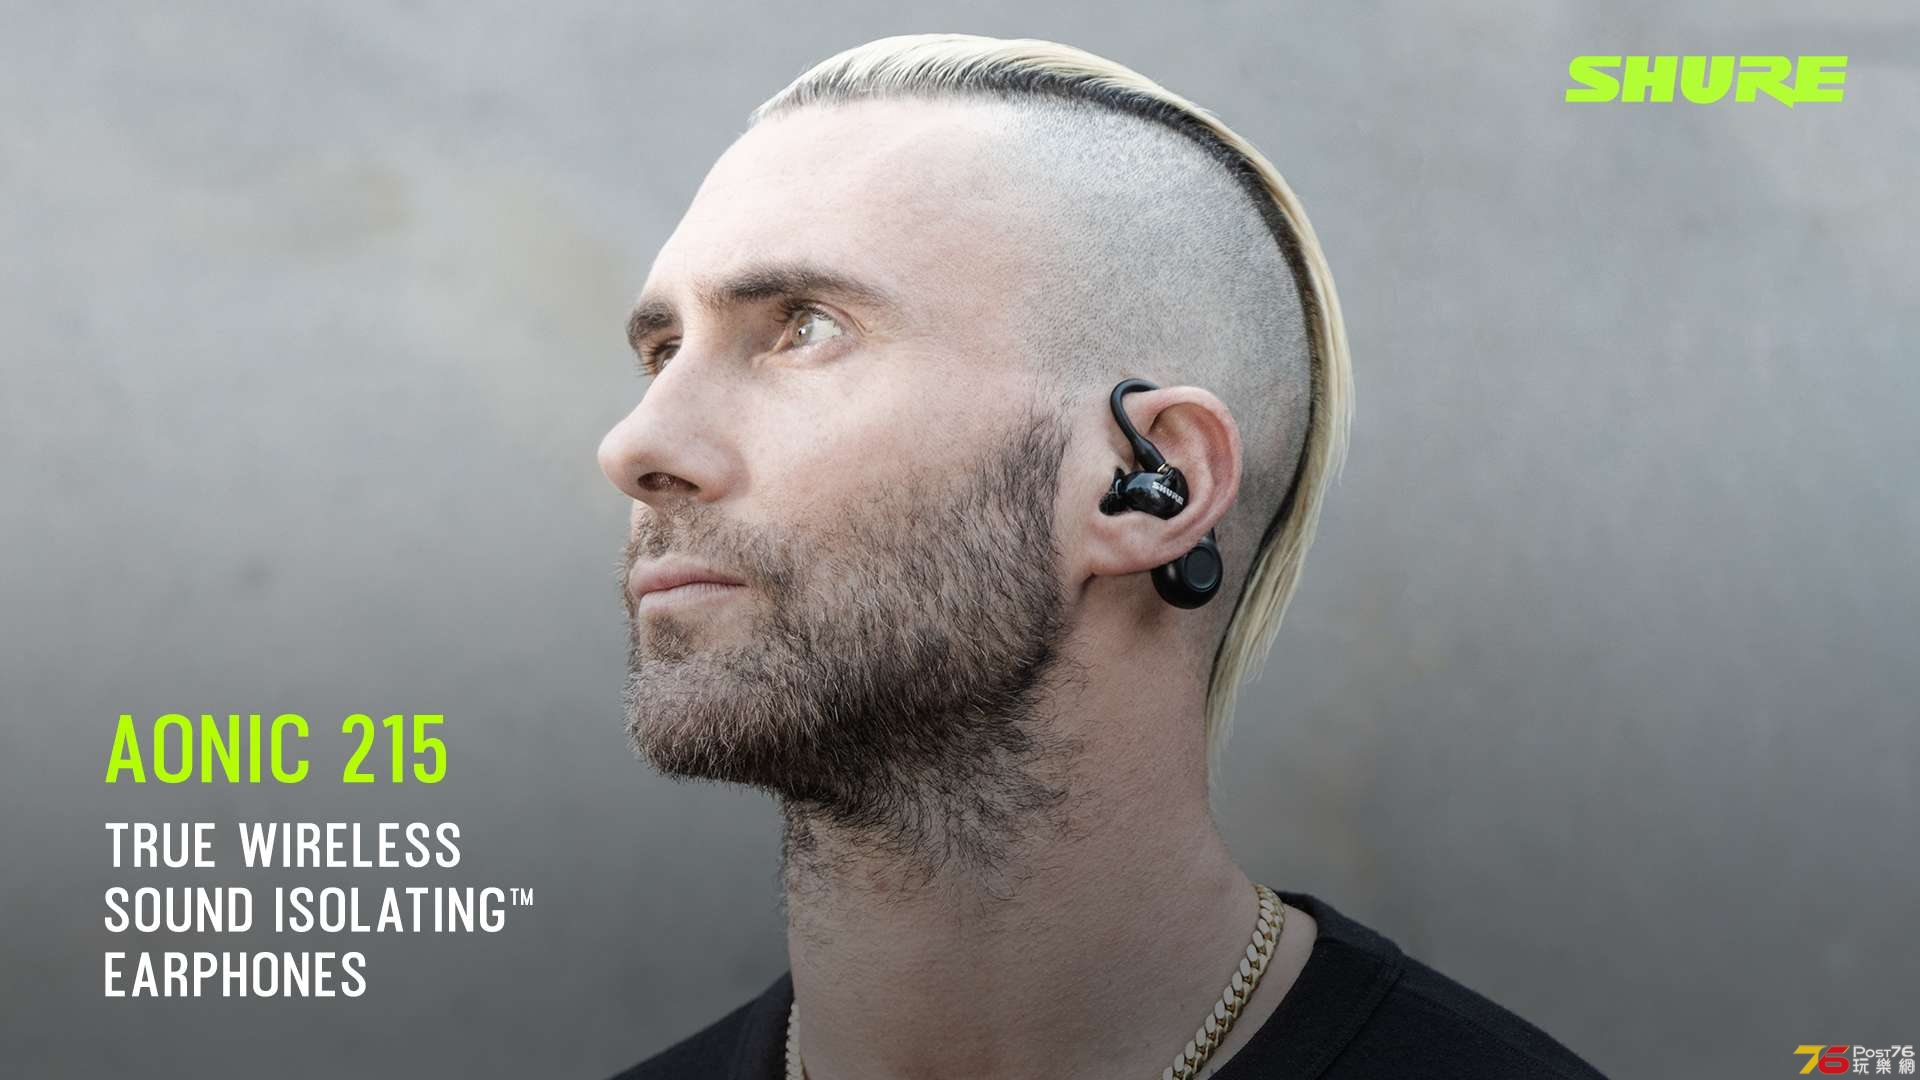 Interconnected_AONIC215_SE215-K-TW1_Social_02_Adam+Levine_1920x1080.png